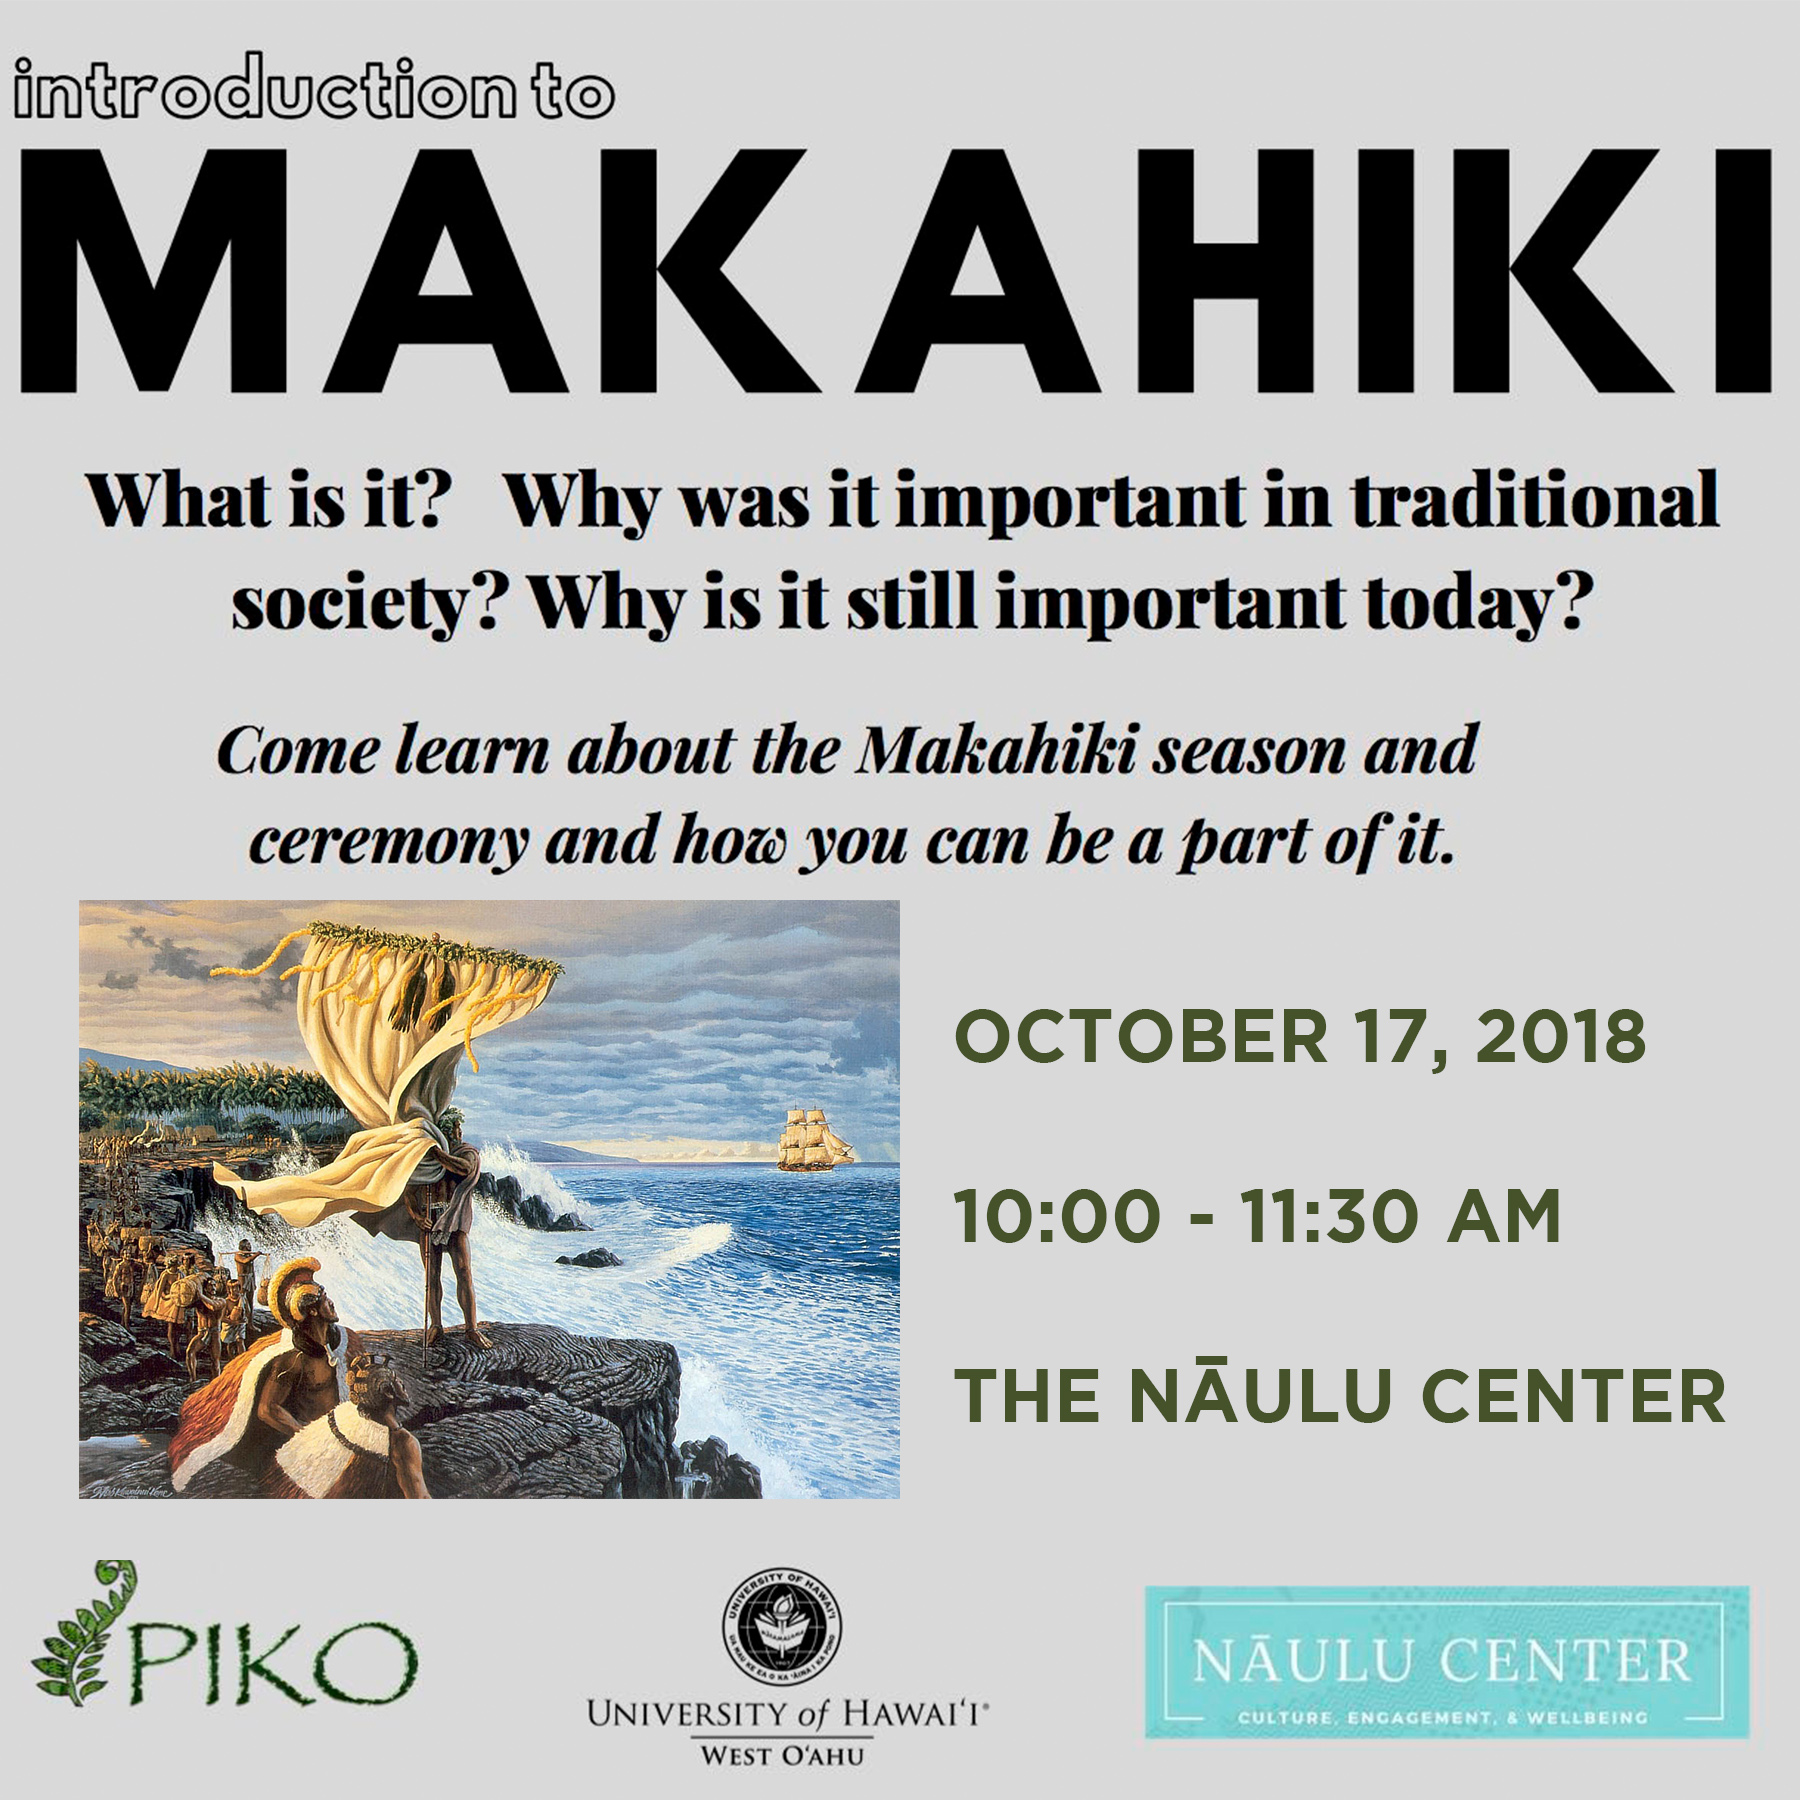 Flier for Makahiki presentation with information that's the same as is presented in the artilce